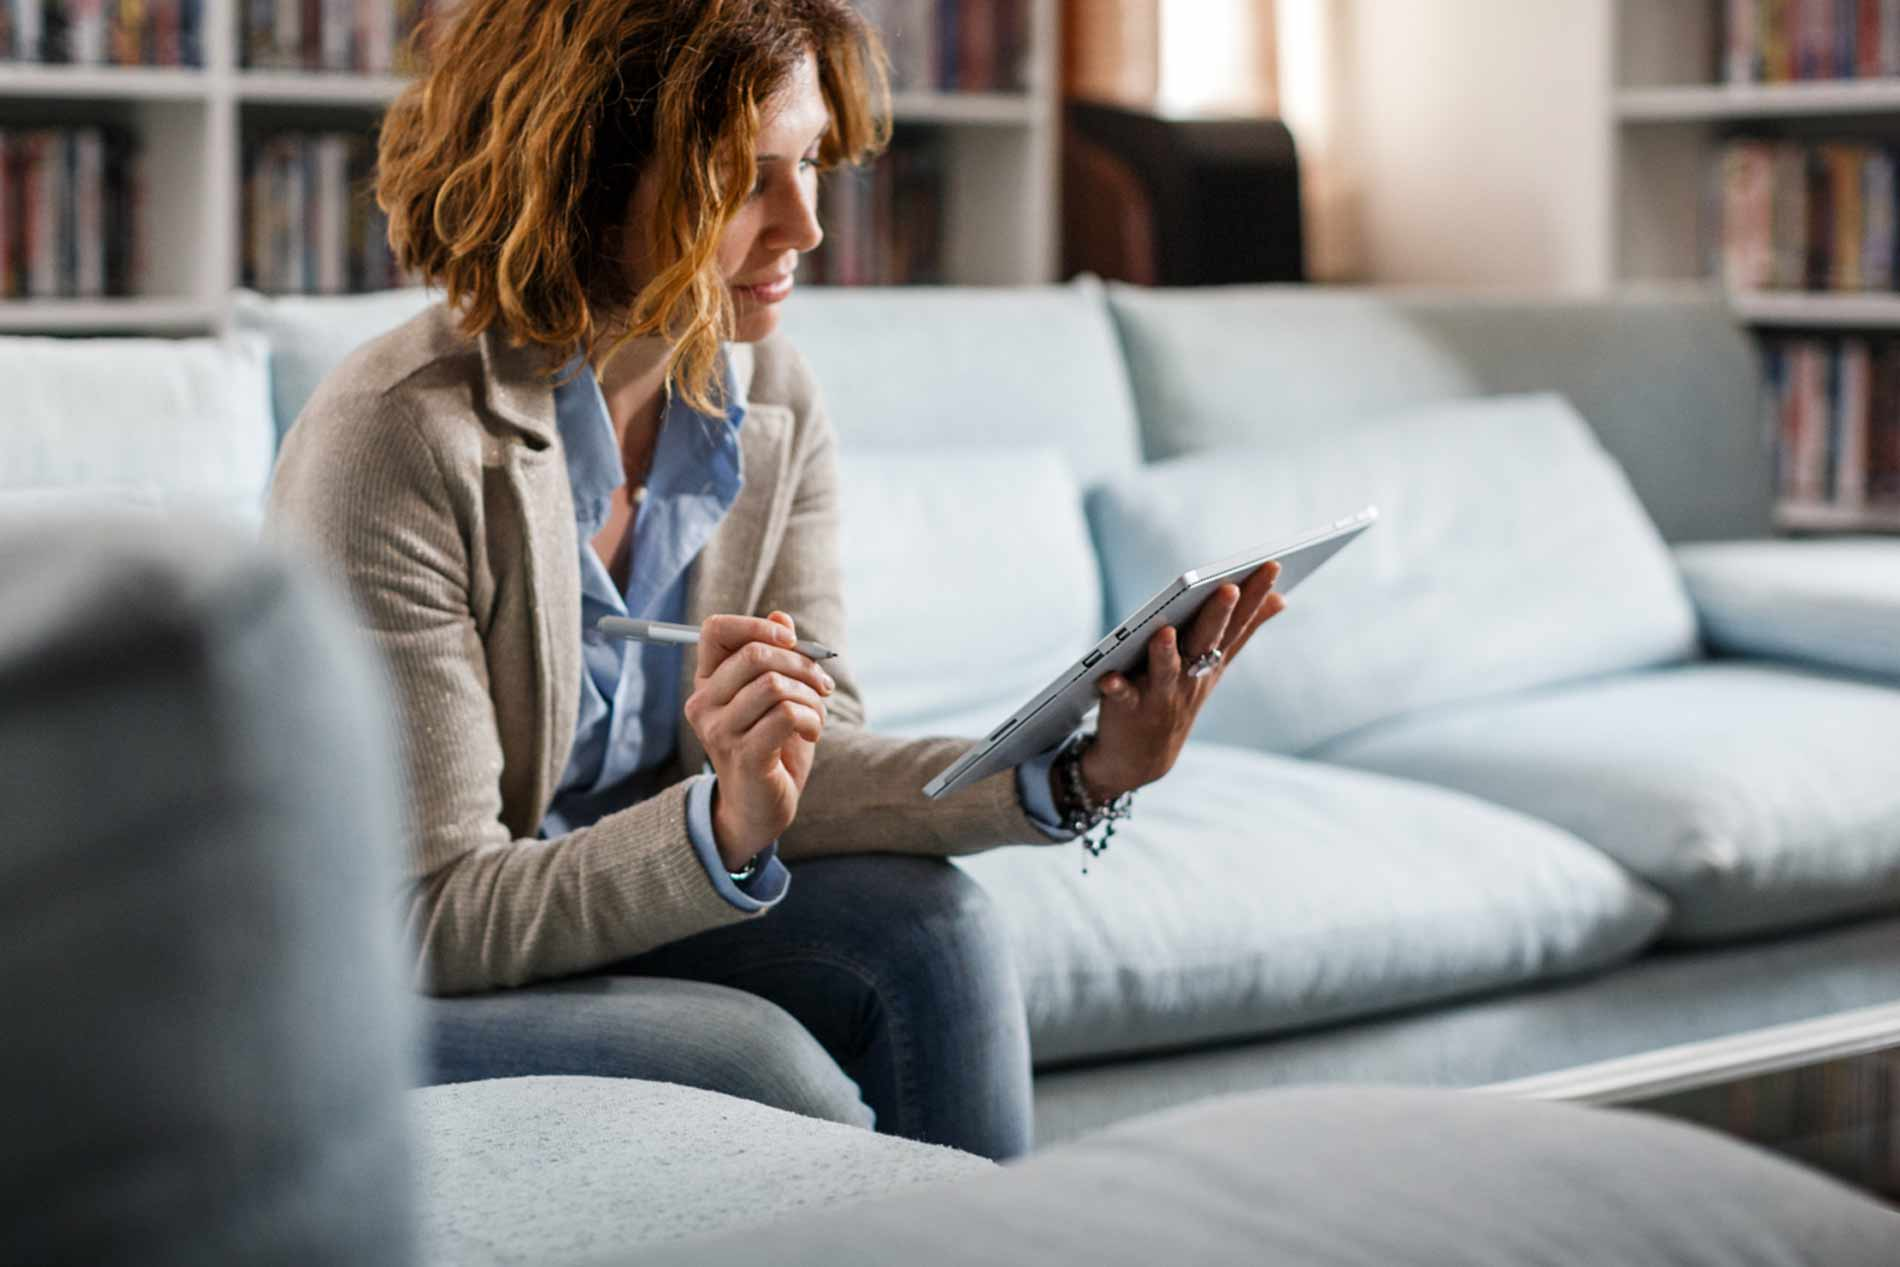 background, woman at home, signing a contract on her tablet